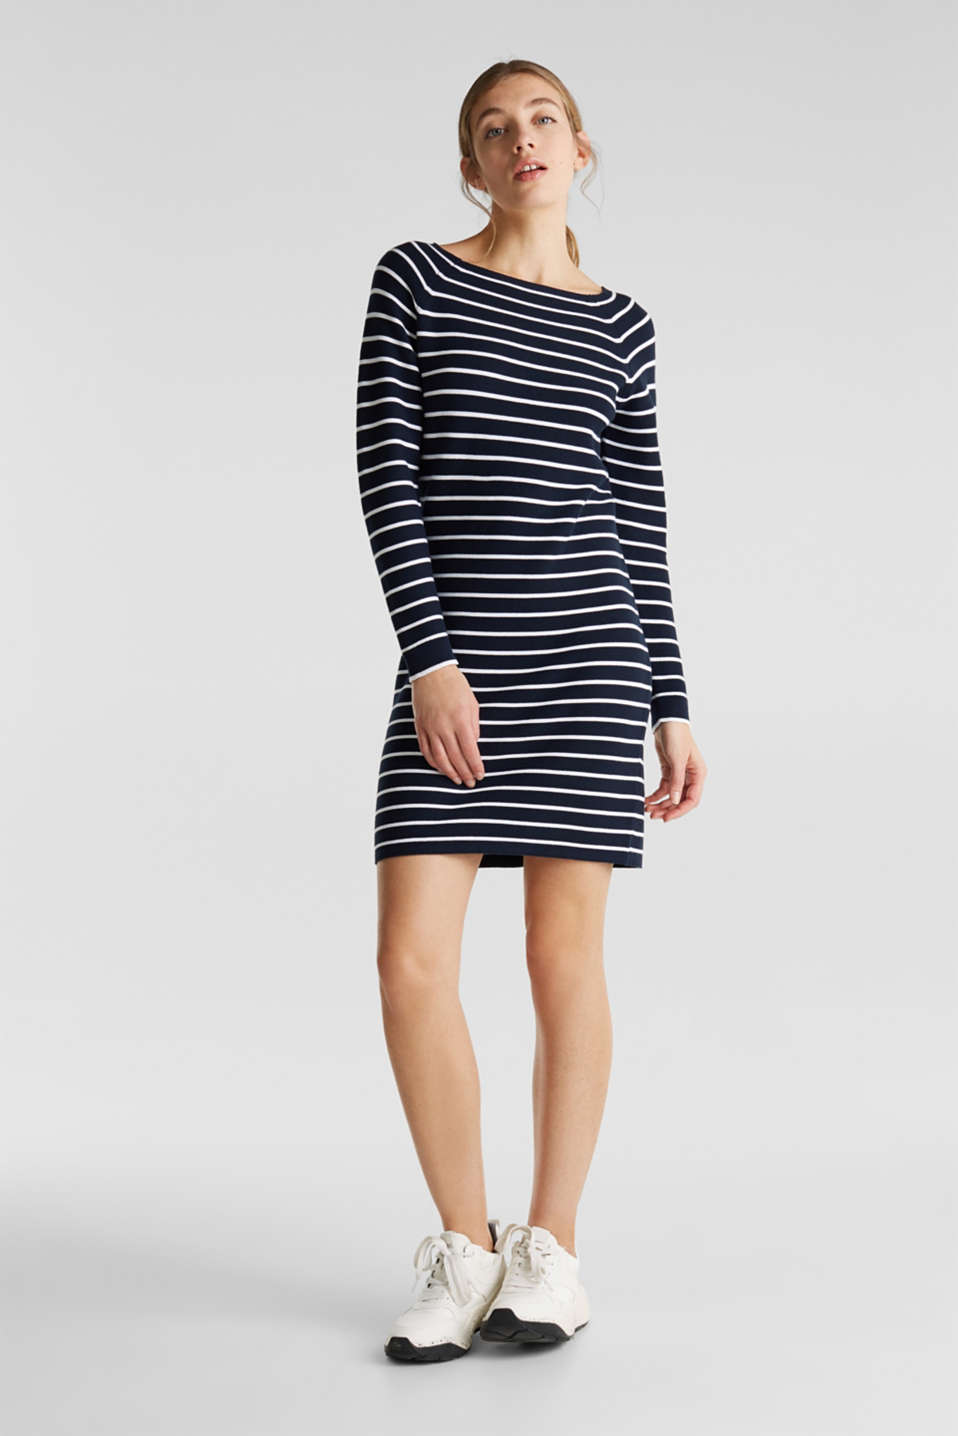 Knit dress with stripes, 100% cotton, NAVY 4, detail image number 1